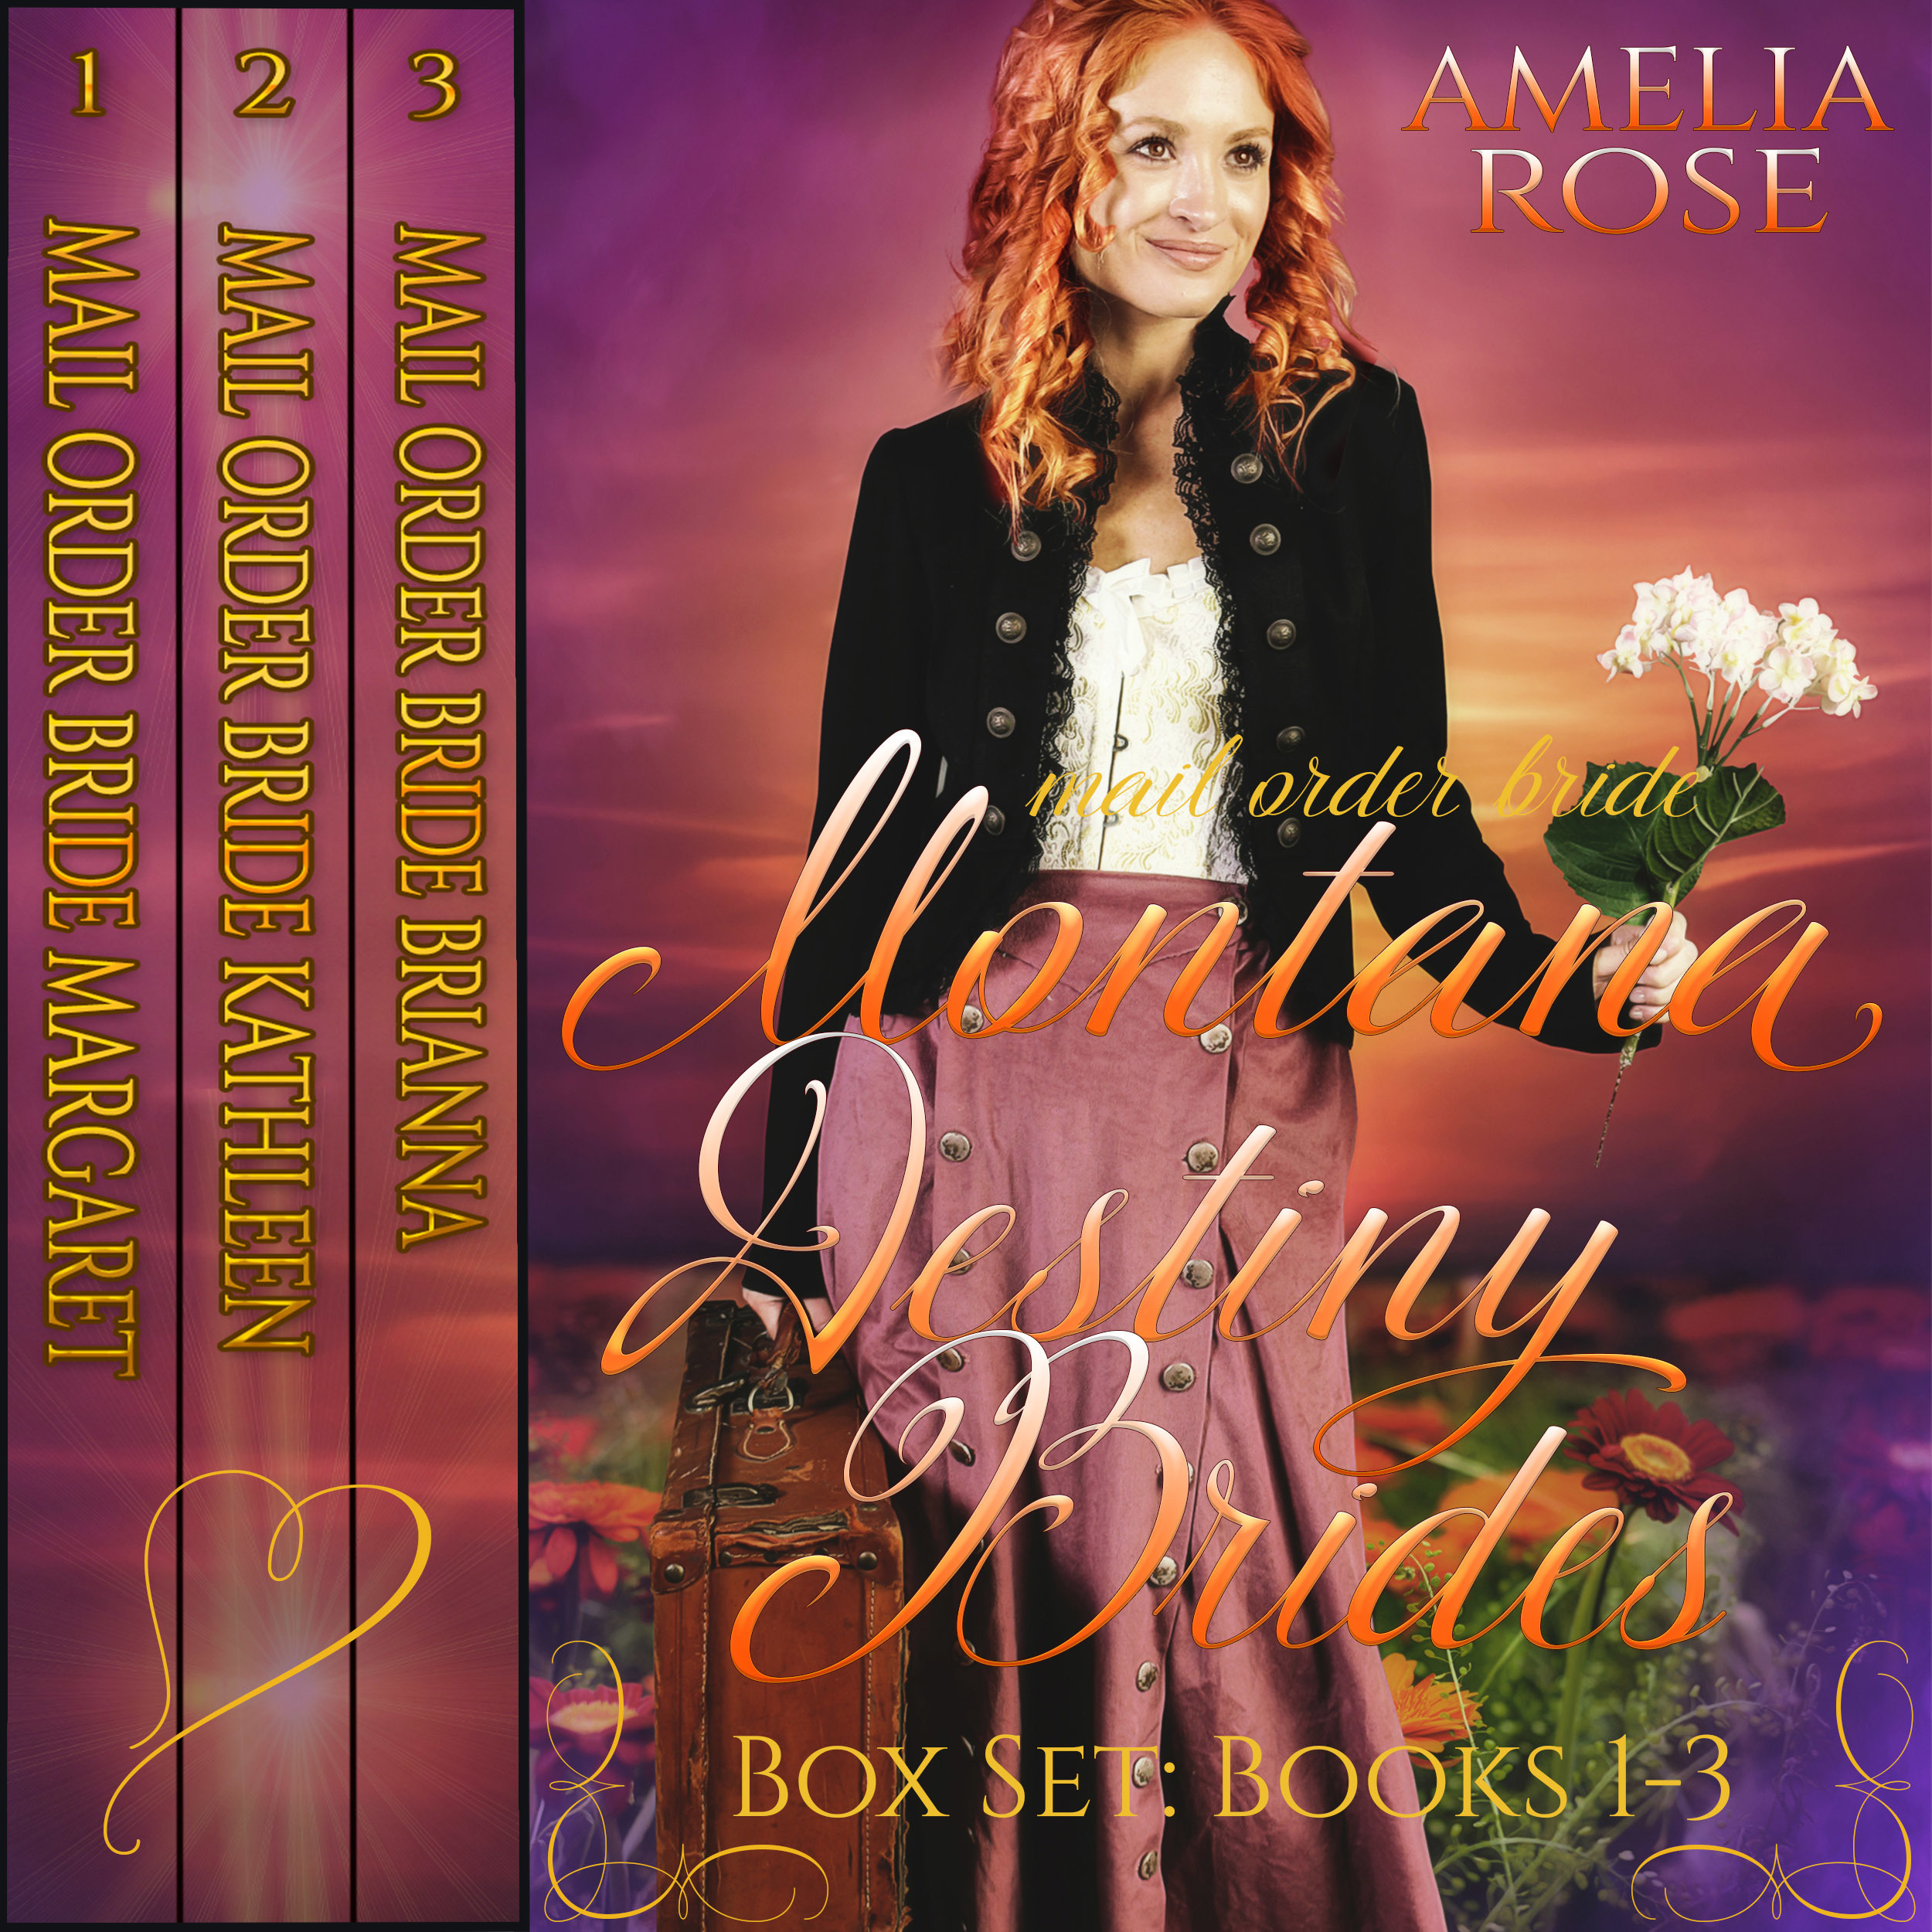 Printable Mail Order Bride - Montana Destiny Brides Box Set - Books 1-3 Audiobook Cover Art